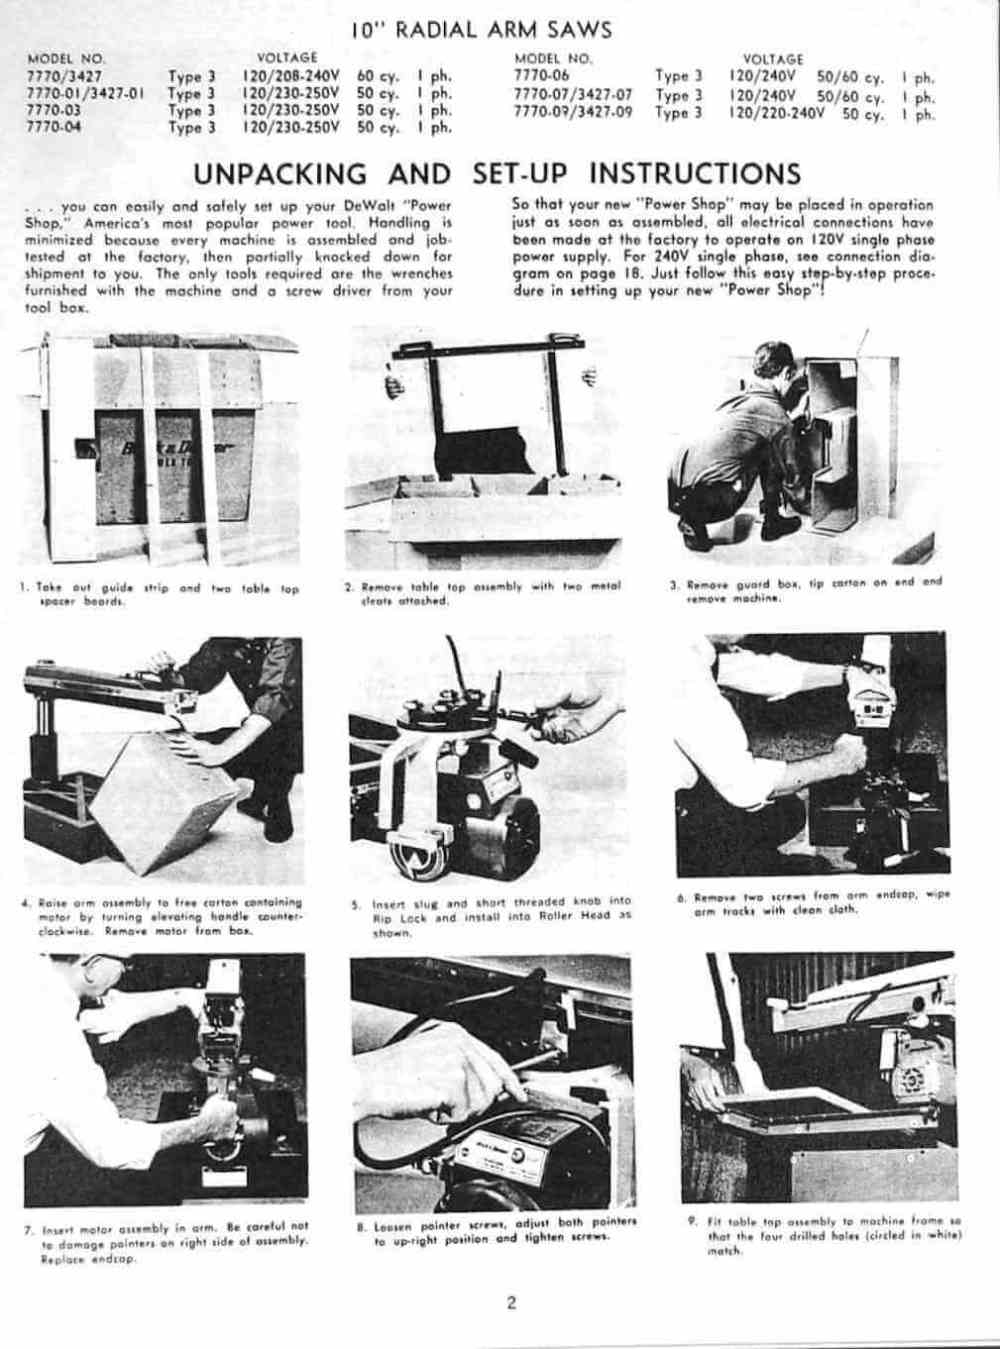 medium resolution of dewalt 7770 10 inch radial arm saw owner s instructions and parts manual